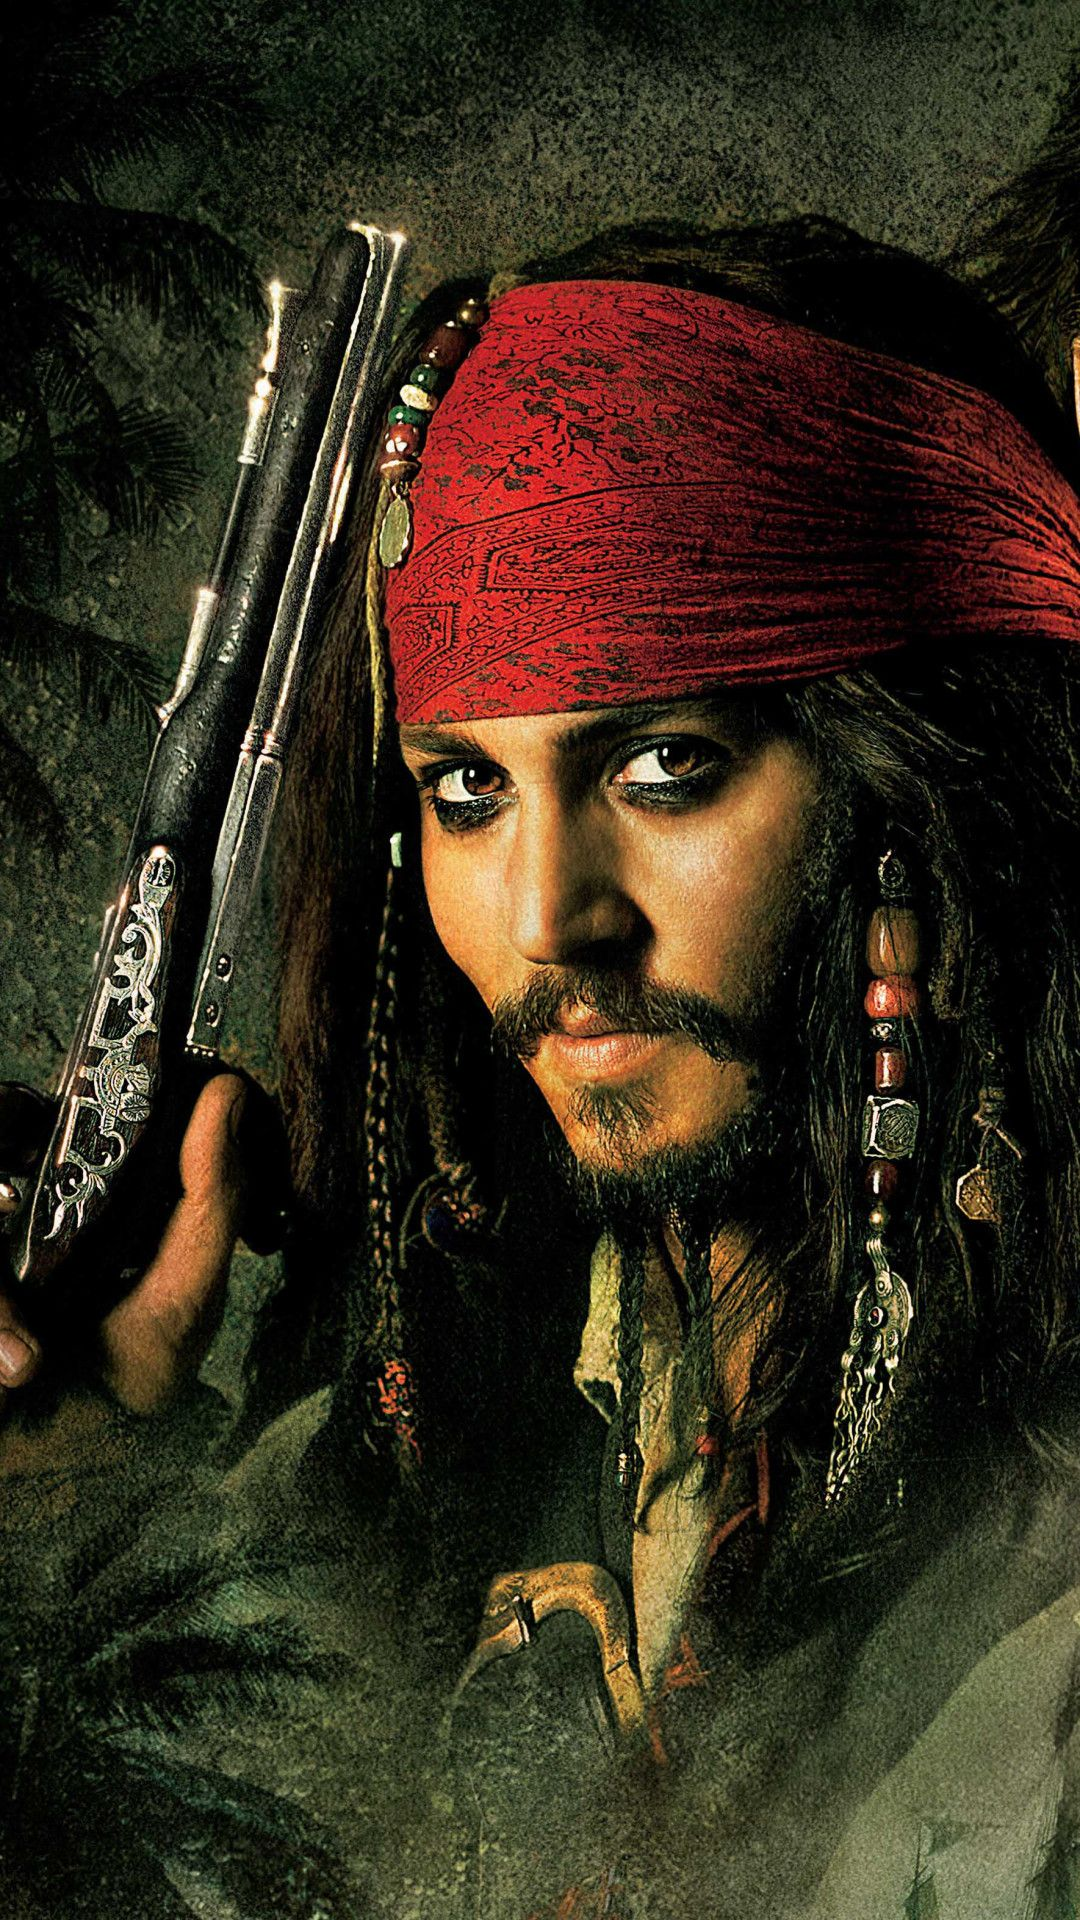 1080x1920 Wallpaper 617162 Jack Sparrow Wallpaper Jack Sparrow Tattoos Pirates Of The Caribbean